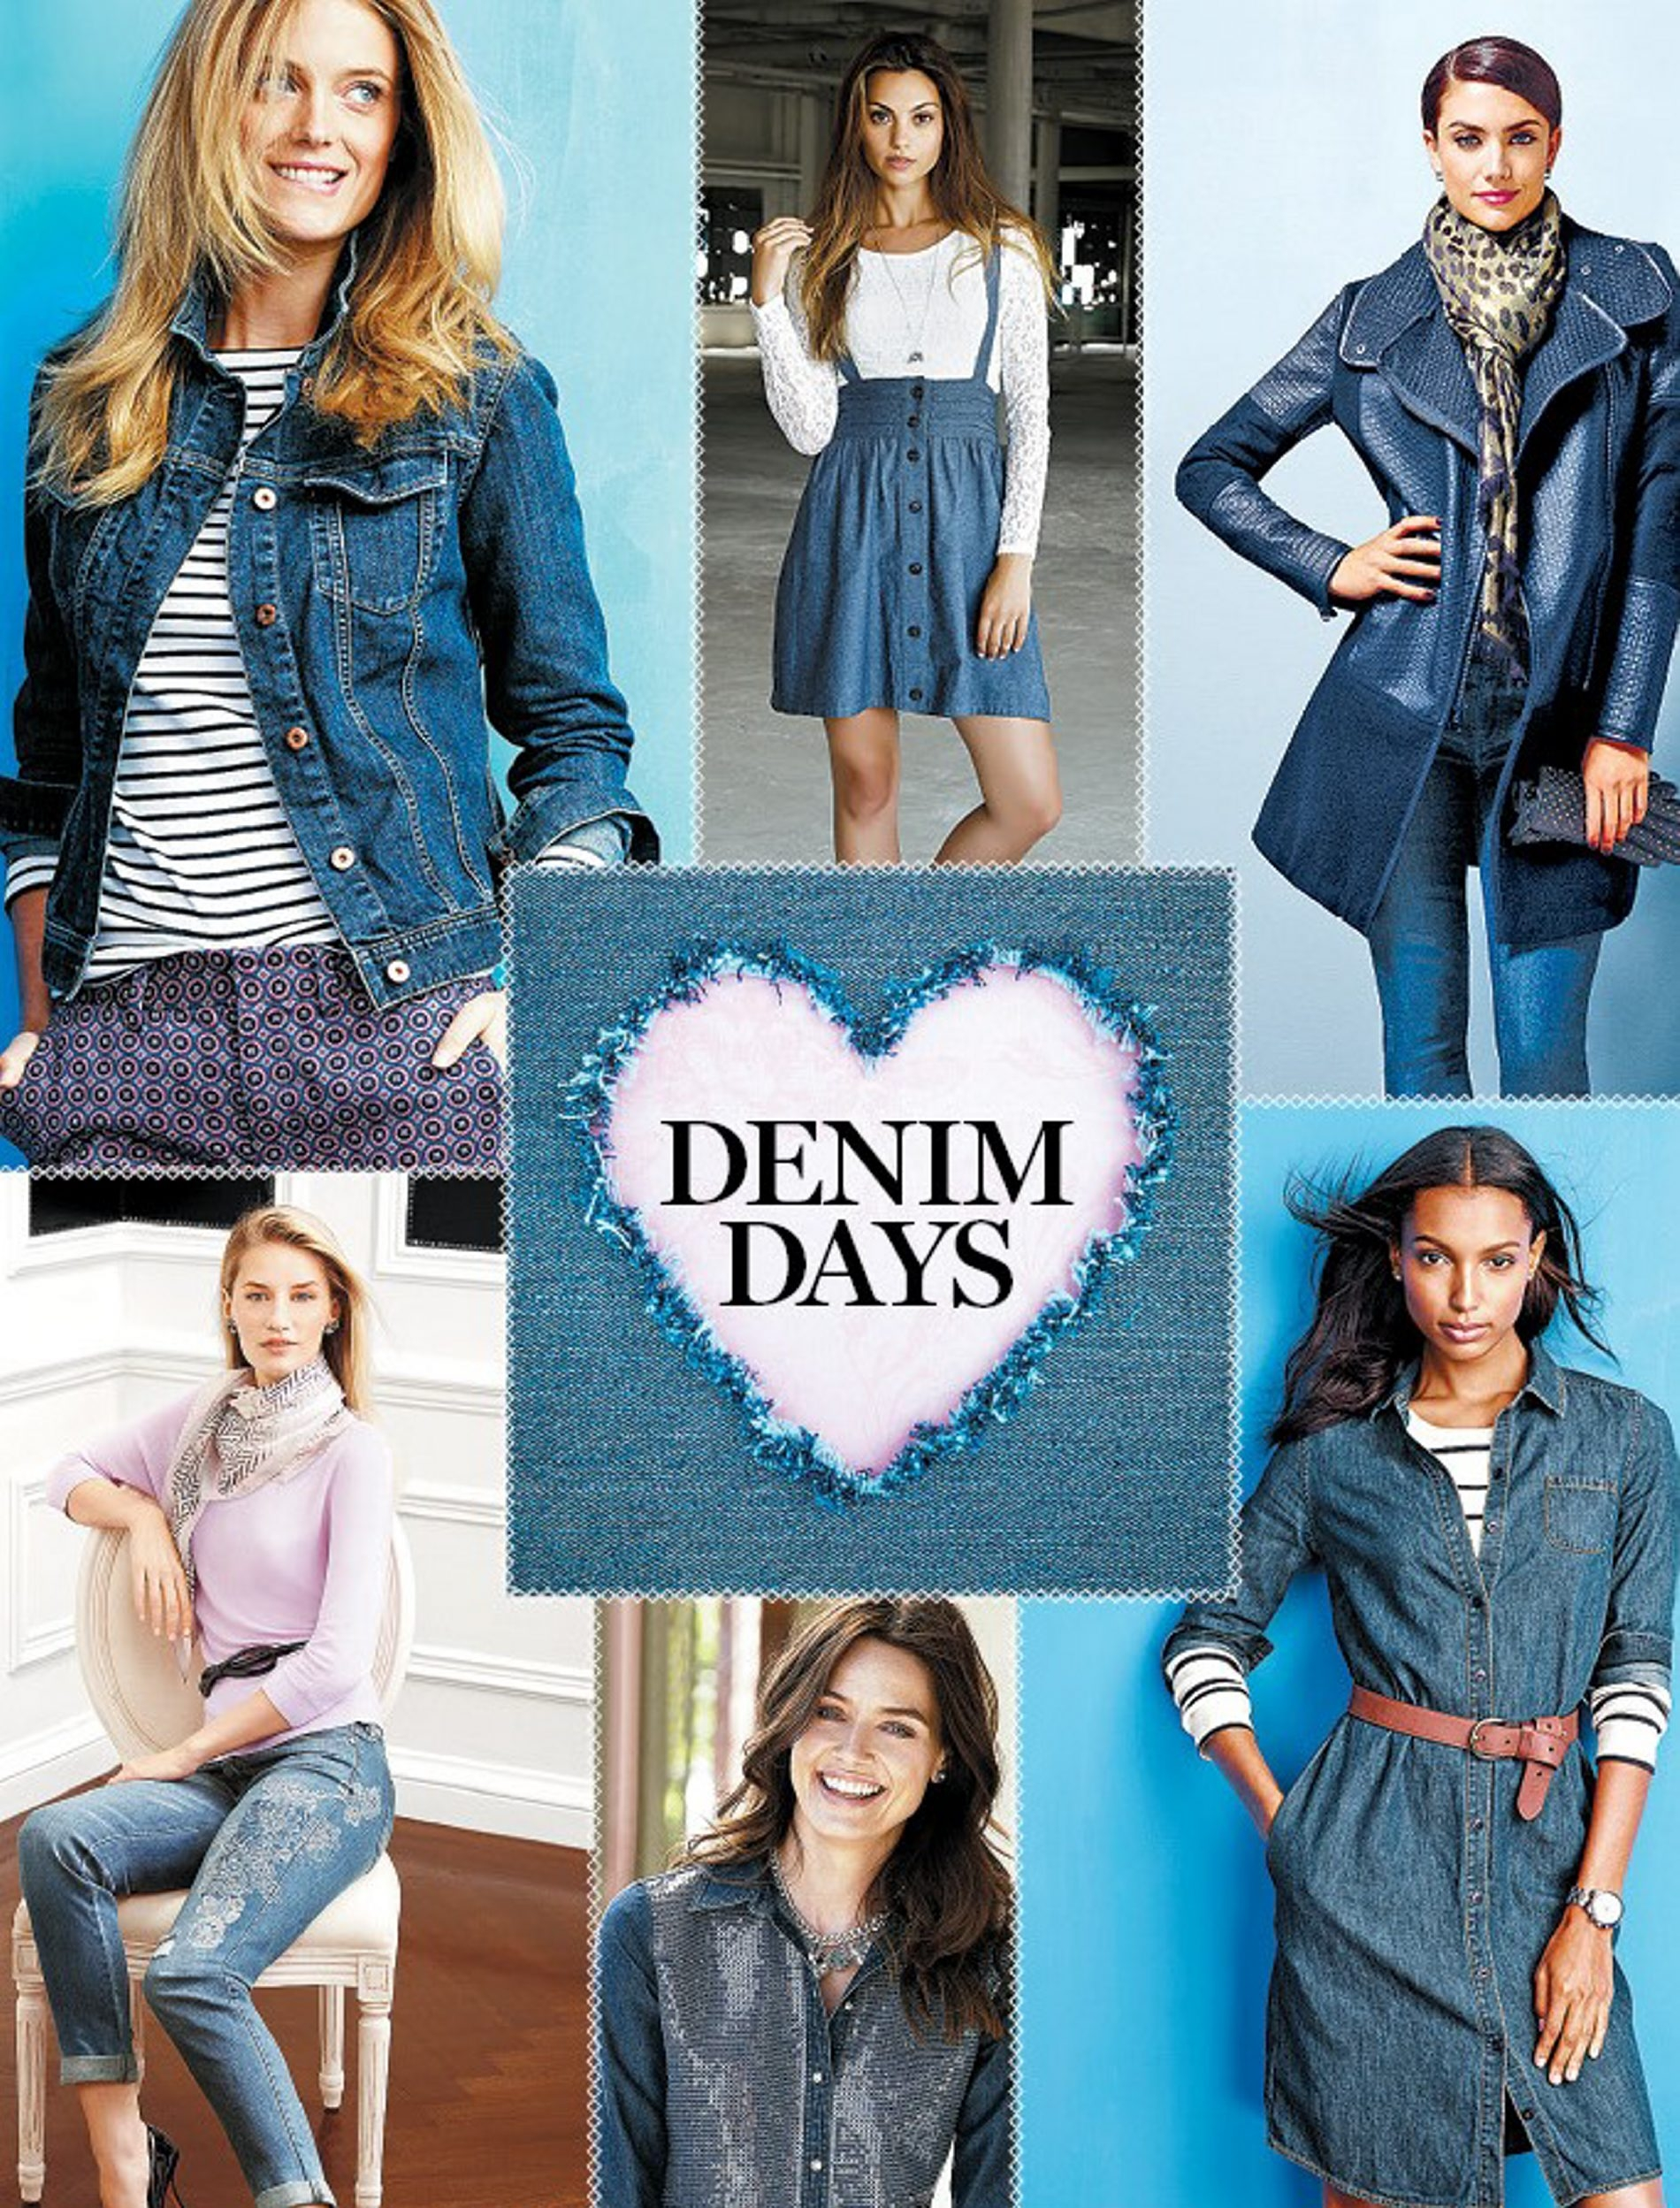 Fall options: Choices for the new season include, clockwise from top left, a denim jacket from Lands' End, a chambray suspender skirt from the Adam Levine collection for Kmart, skinny jeans shown with a quilted car coat from Caché, a denim shirtdress from Lands' End, a sequin denim Tabitha II top from Chico's and Saint Honoré girlfriend jeans paired with a pink sweater from White House Black Market.